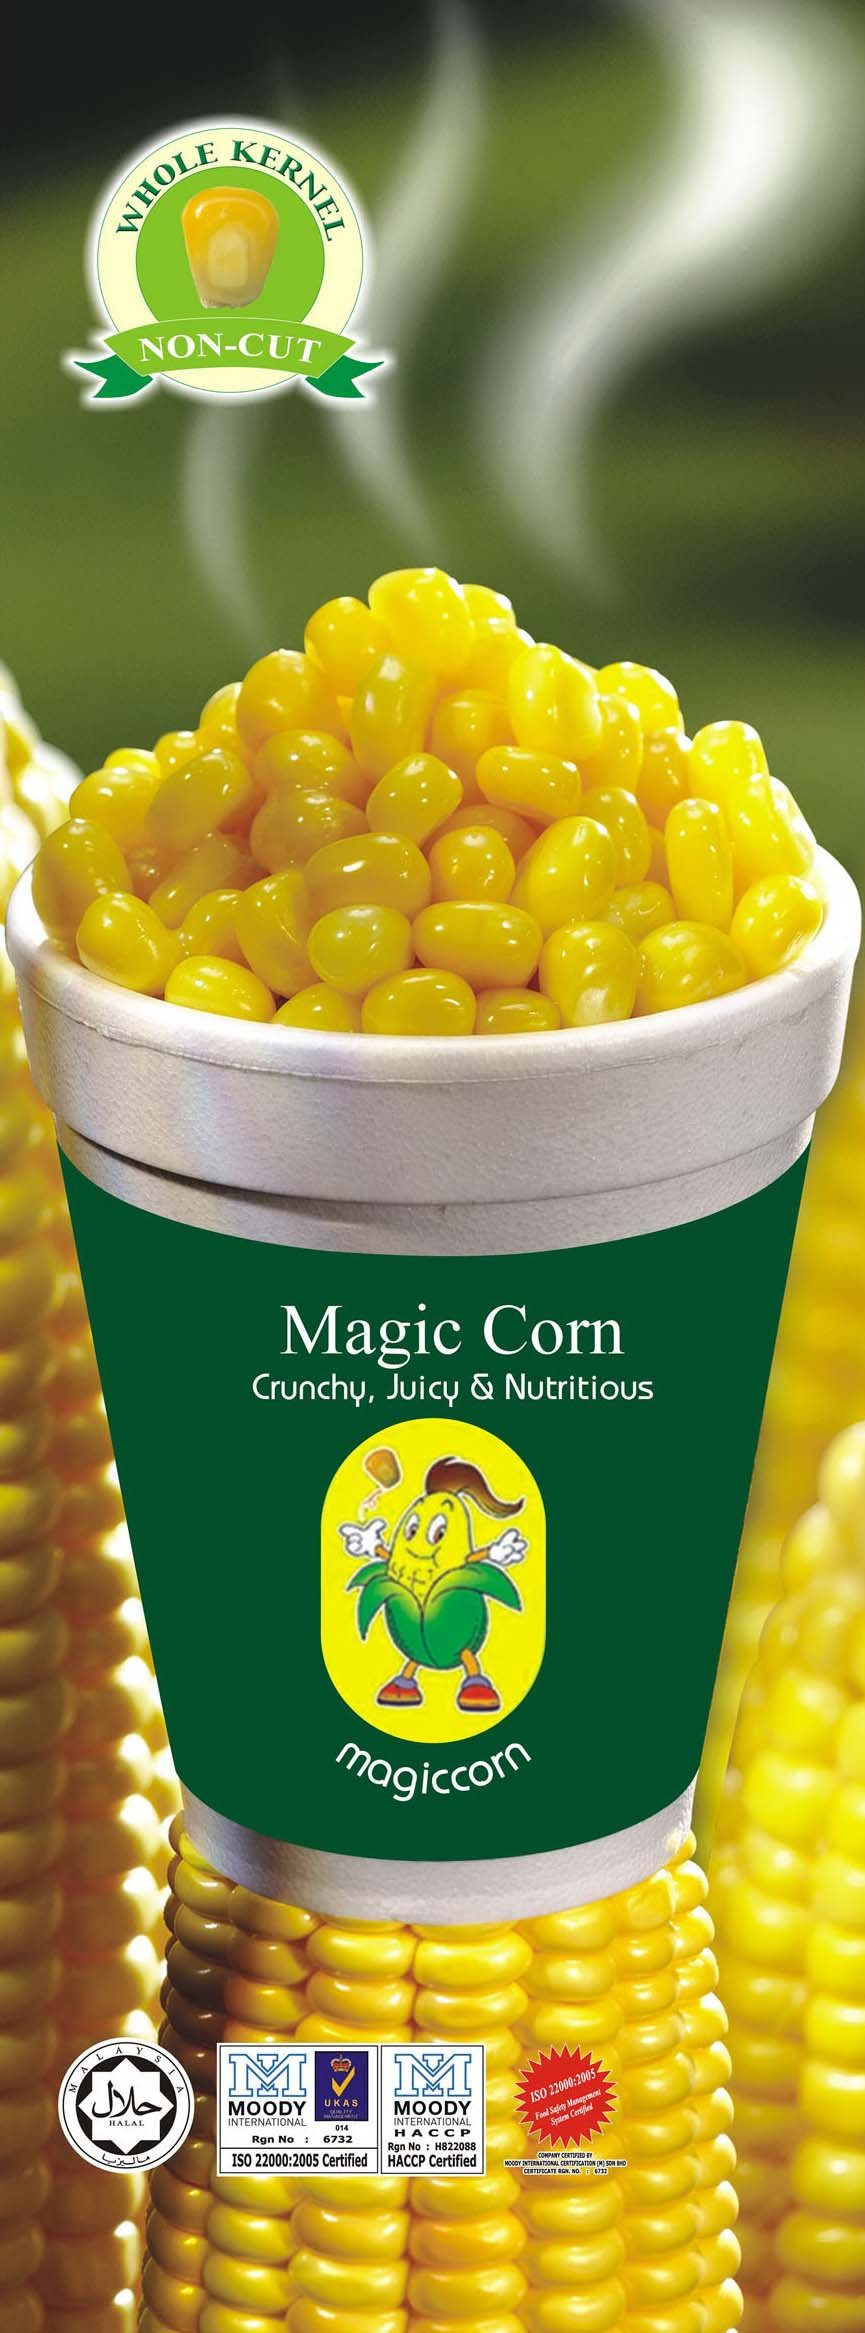 Cup Corn